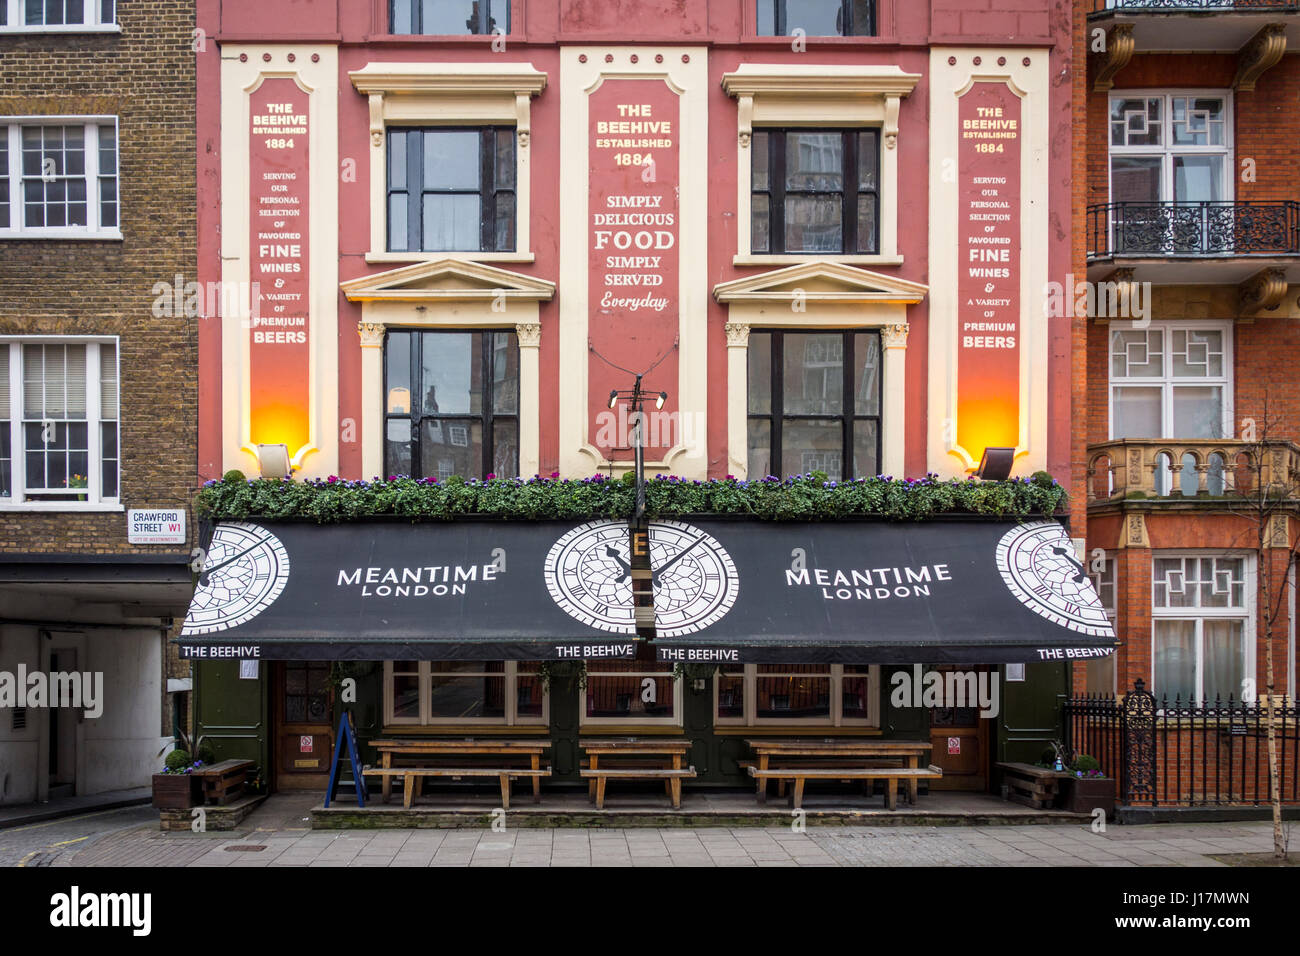 The Beehive pub, Crawford Street, Marylebone, London, UK. Public house, bar, London pub - Stock Image